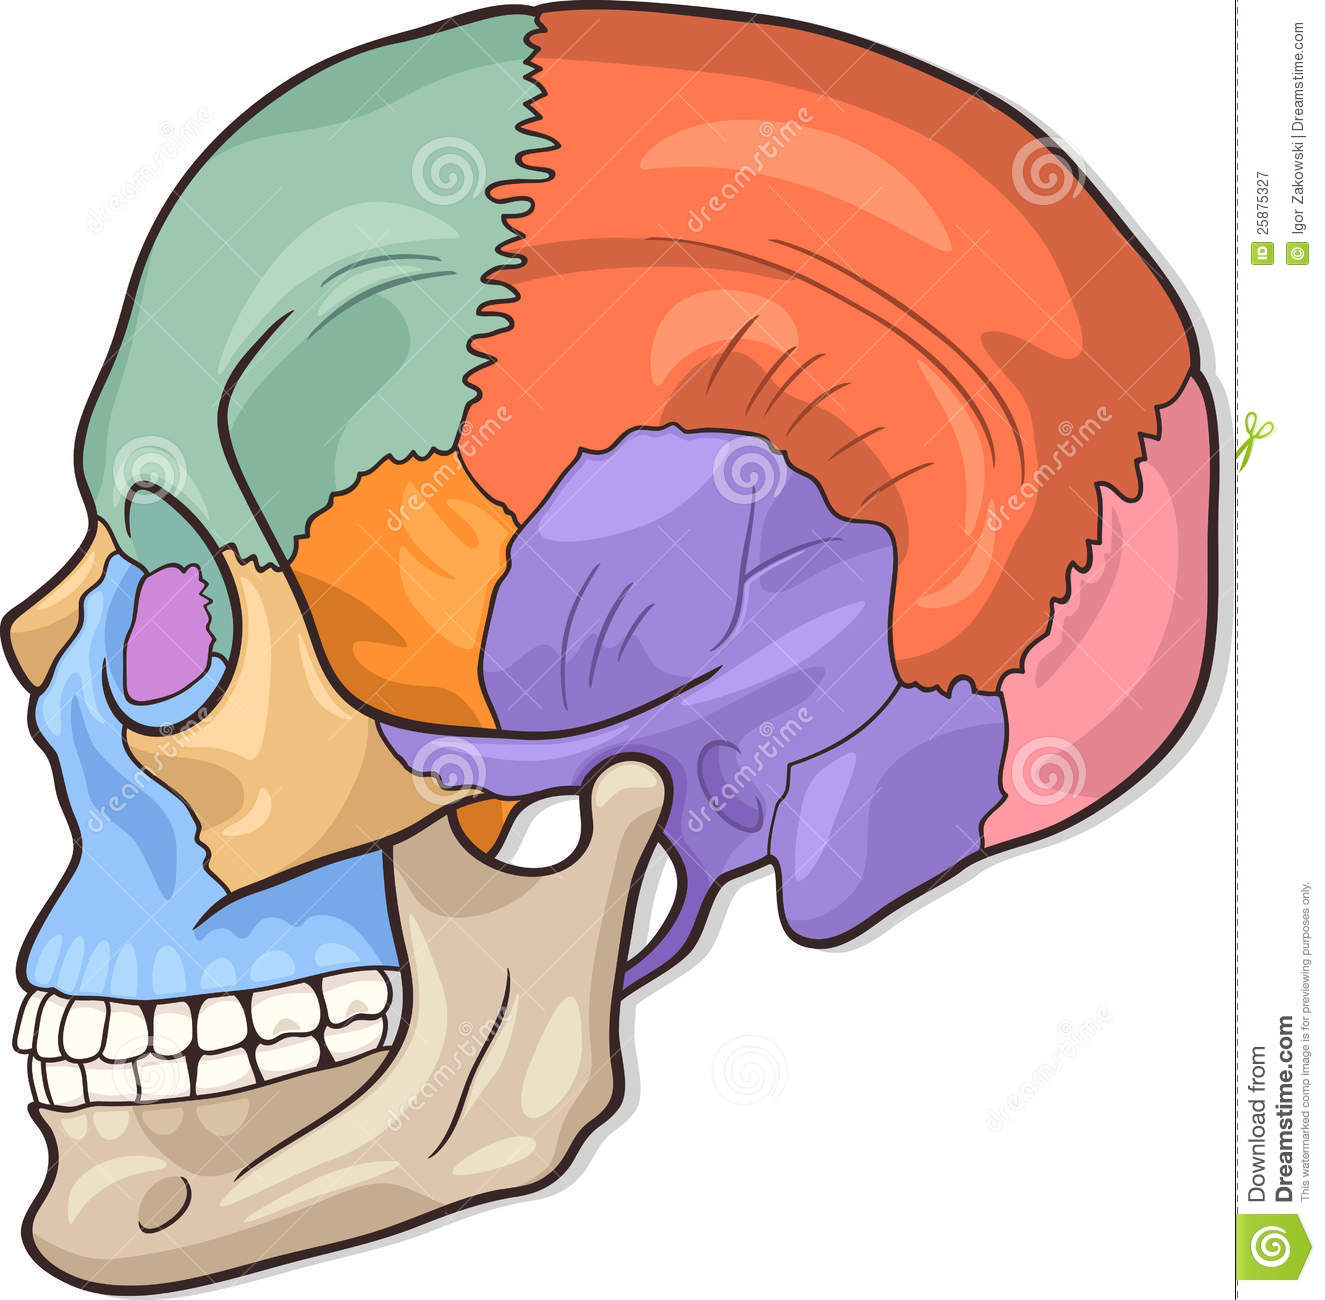 medical vector illustration of human skull bones graphic diagram